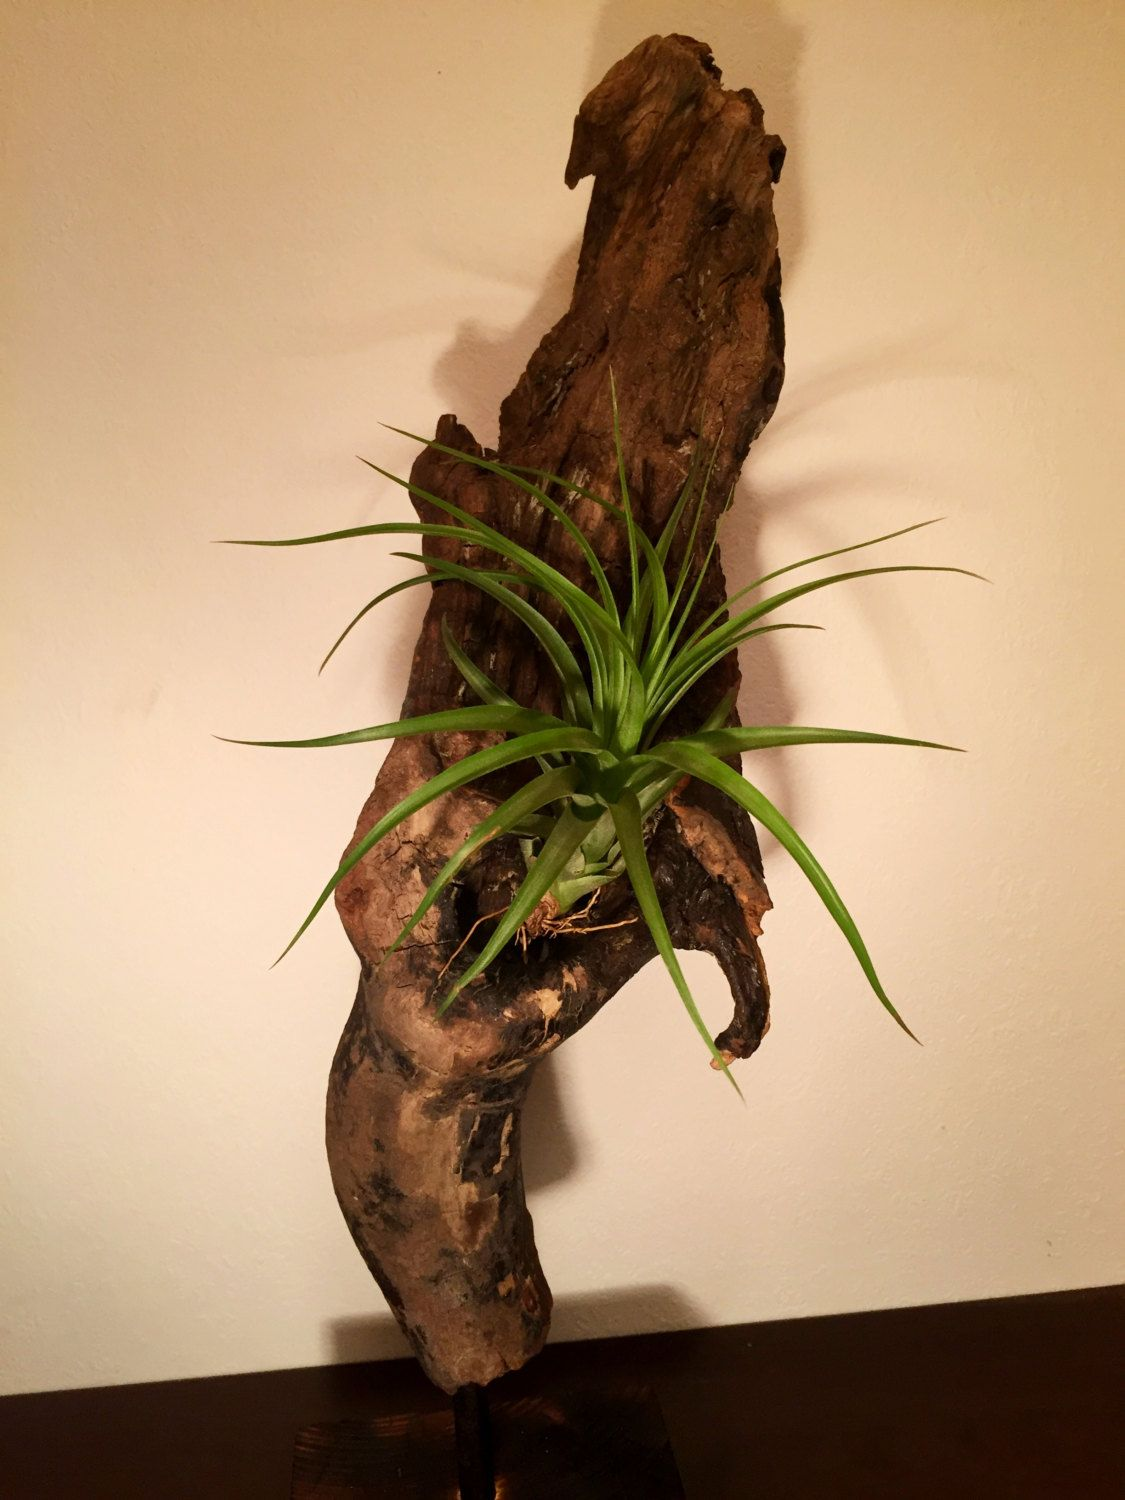 Sculpture with plant by HolzDinge on Etsy